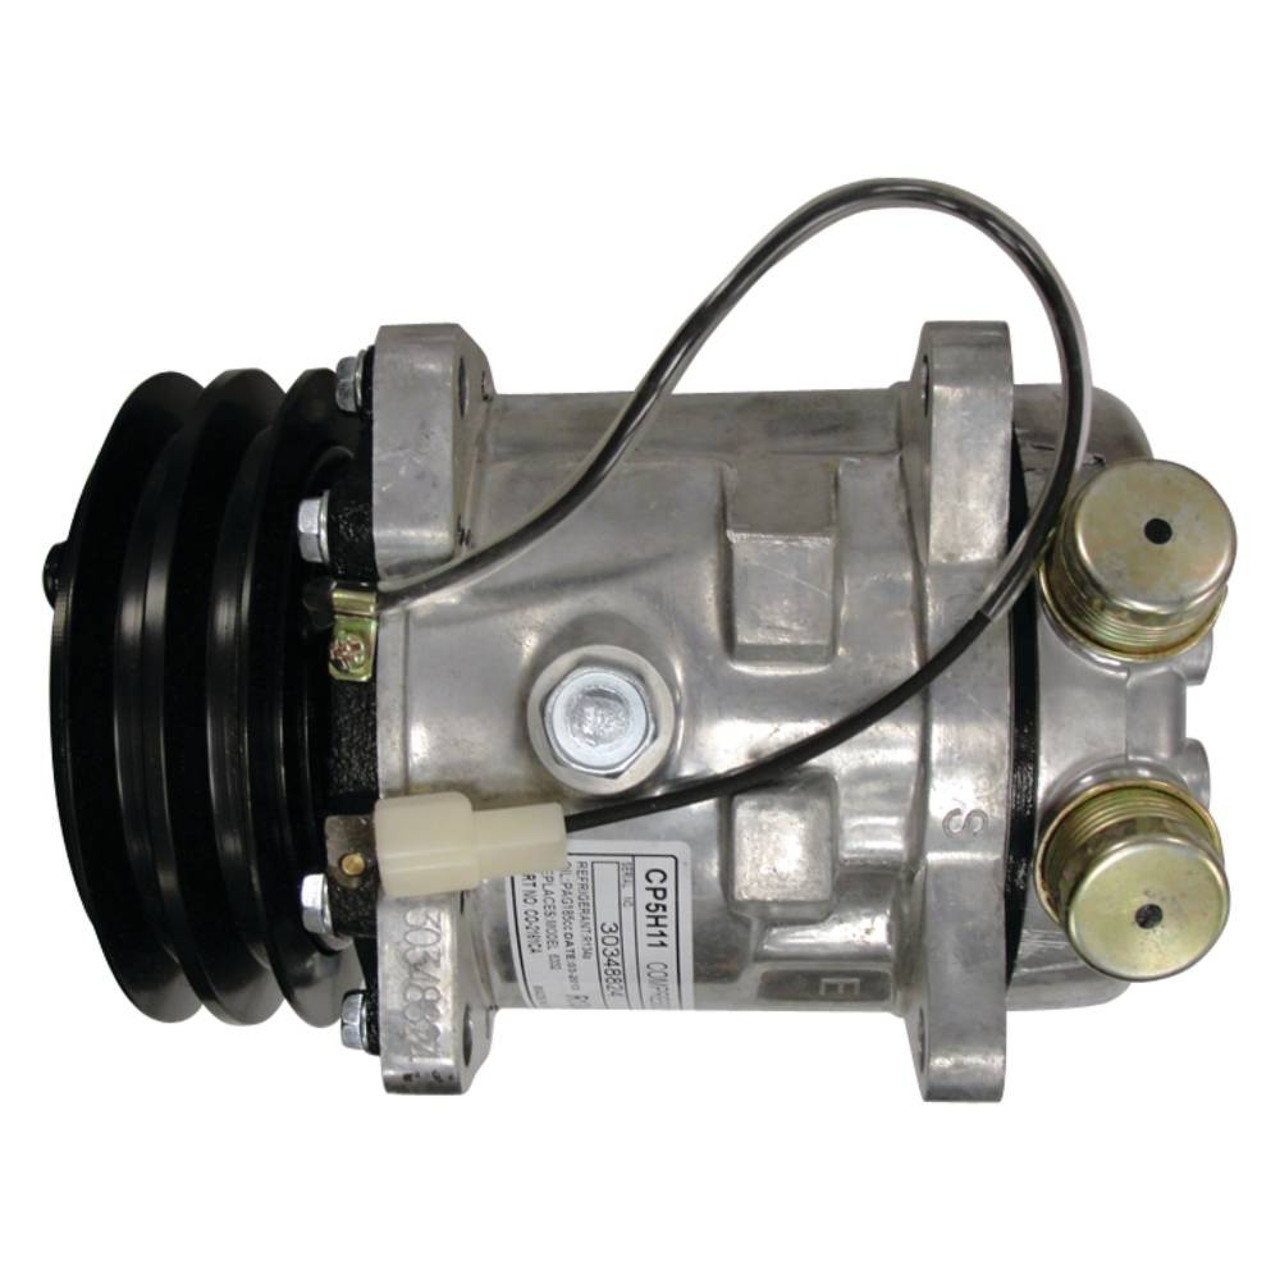 New A C Compressor For Ford New Holland Tn55D, Tn55S, Tn60Da, Tn60Sa